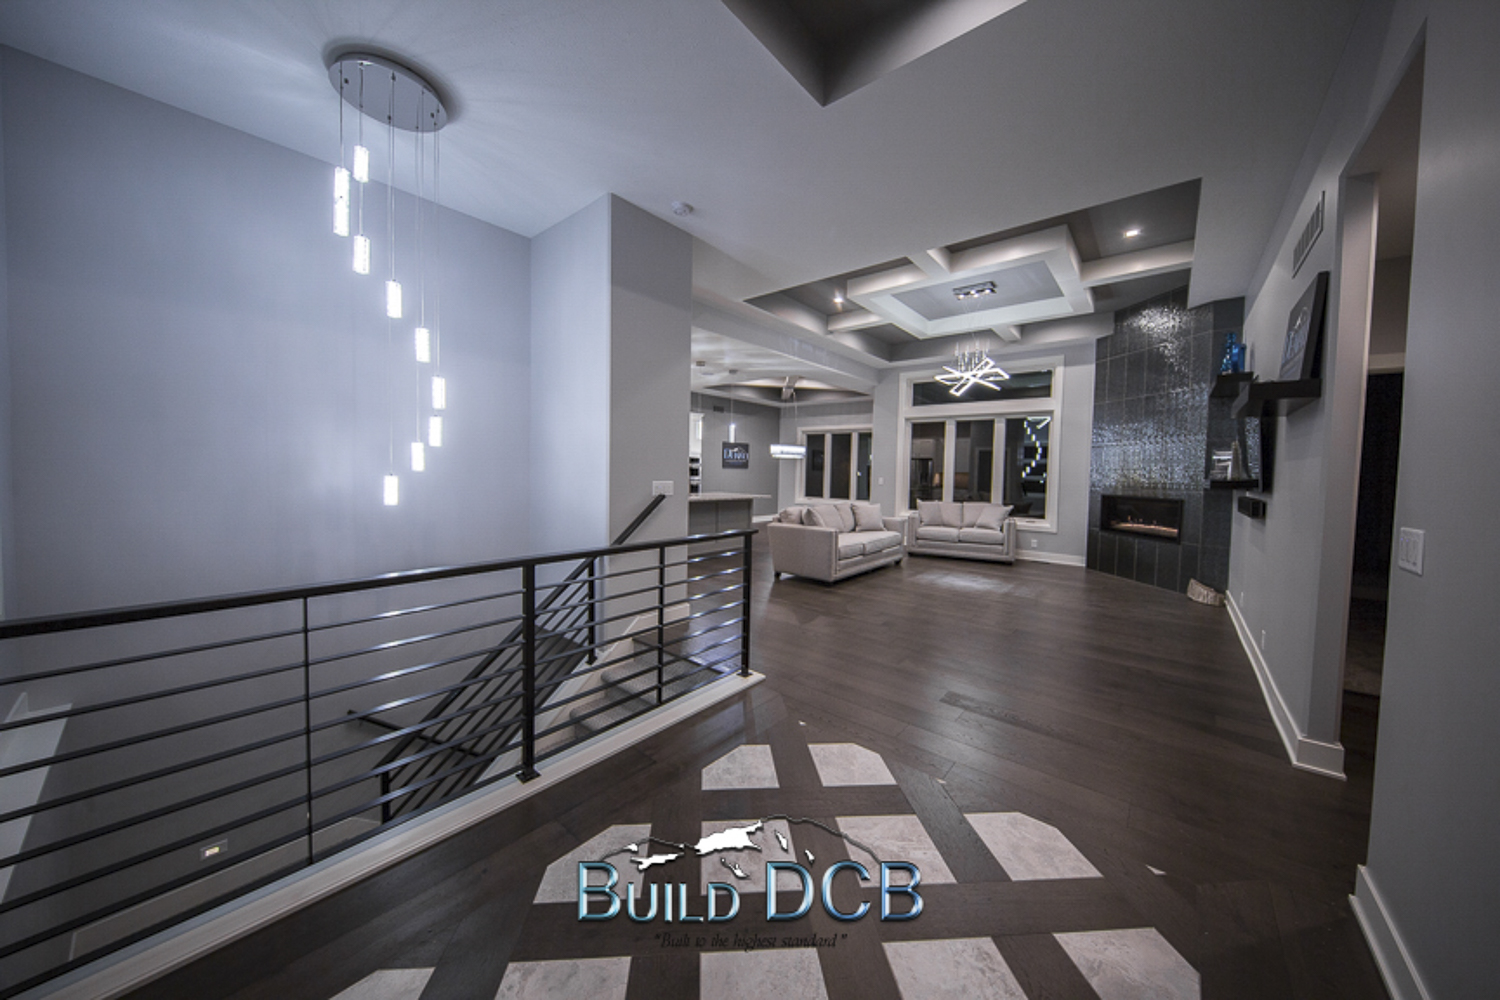 Model home entry way